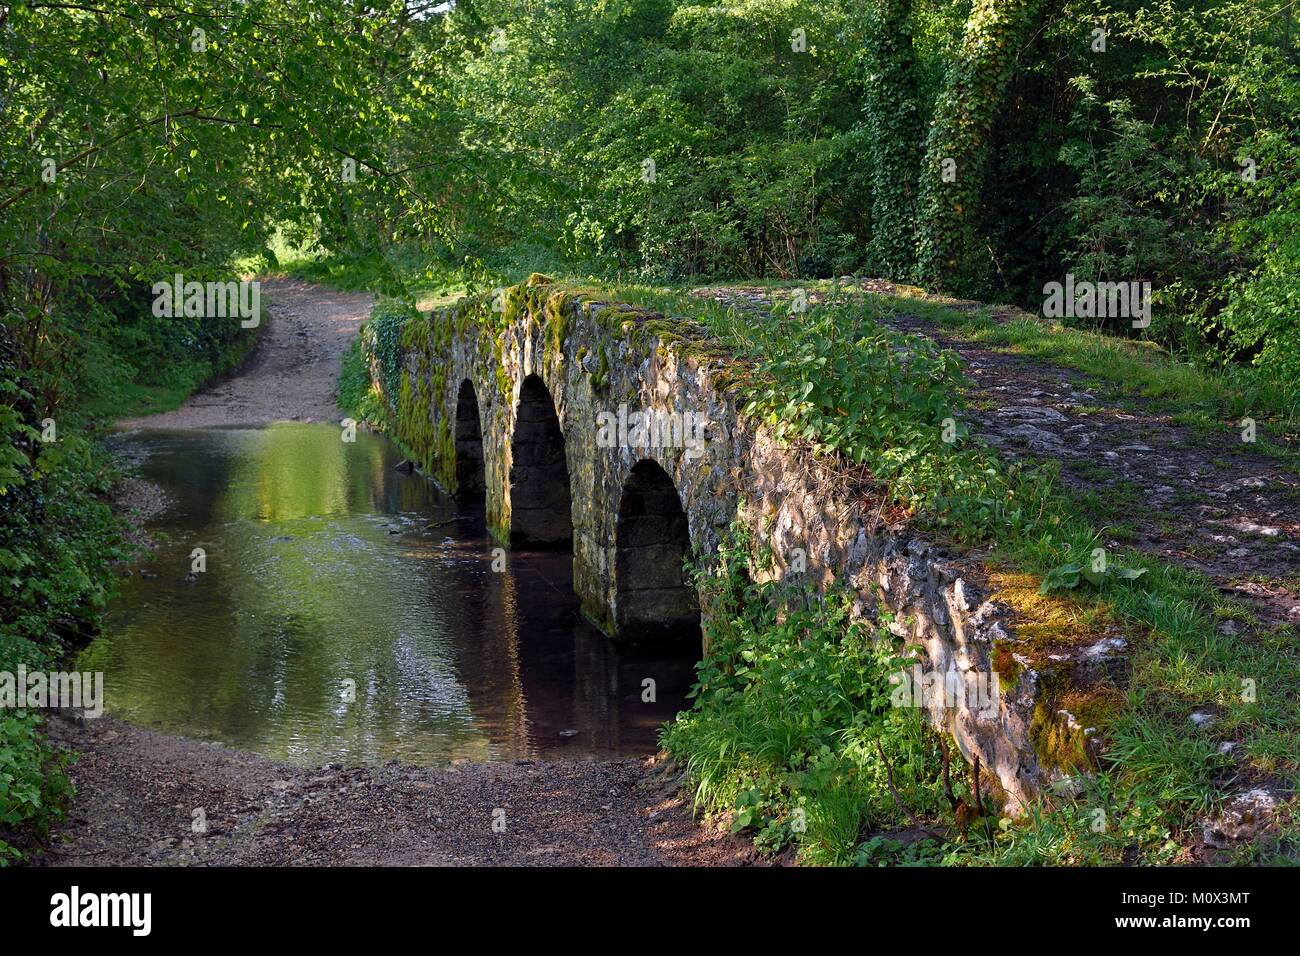 France,Yvelines,Montchauvet,Medieval Romanesque bridge called Pont de l'Arche built under Philippe Auguste - Stock Image